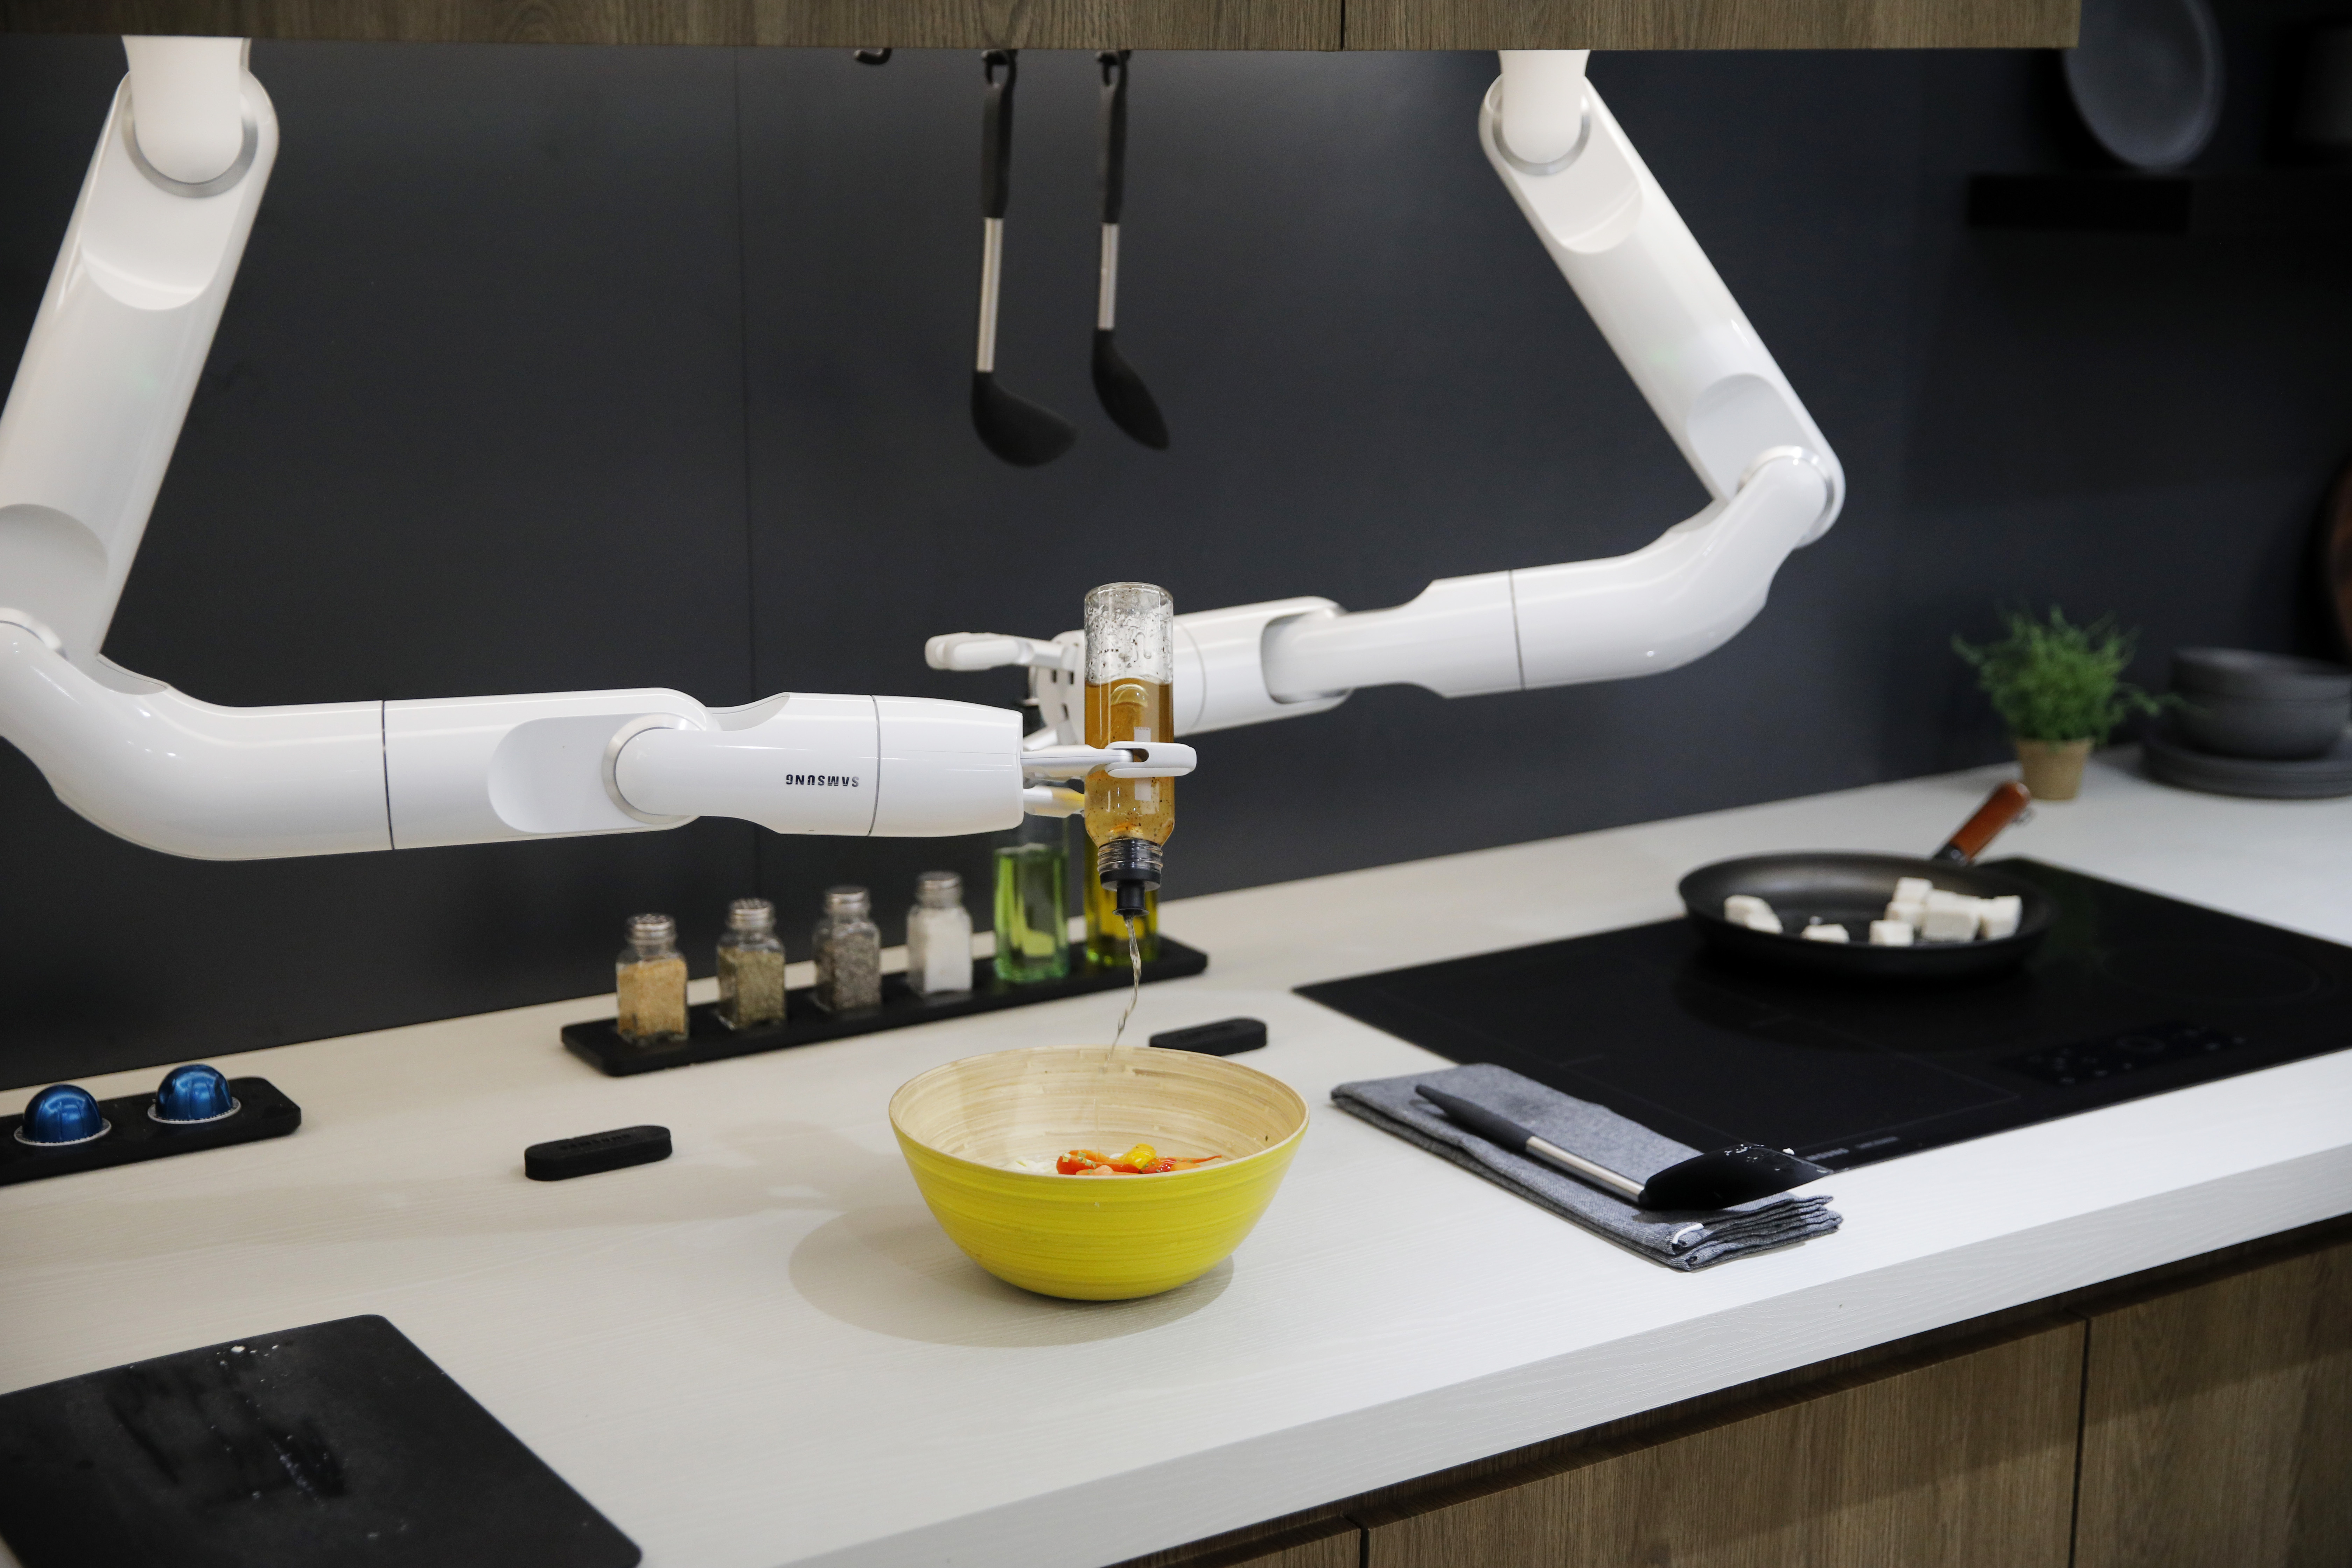 The Bot Chef pours dressing into a salad during a demonstration at the Samsung booth during the CES tech show, Tuesday, Jan. 7, 2020, in Las Vegas. The robot is designed to help with cooking tasks, not to make a meal all on it's own